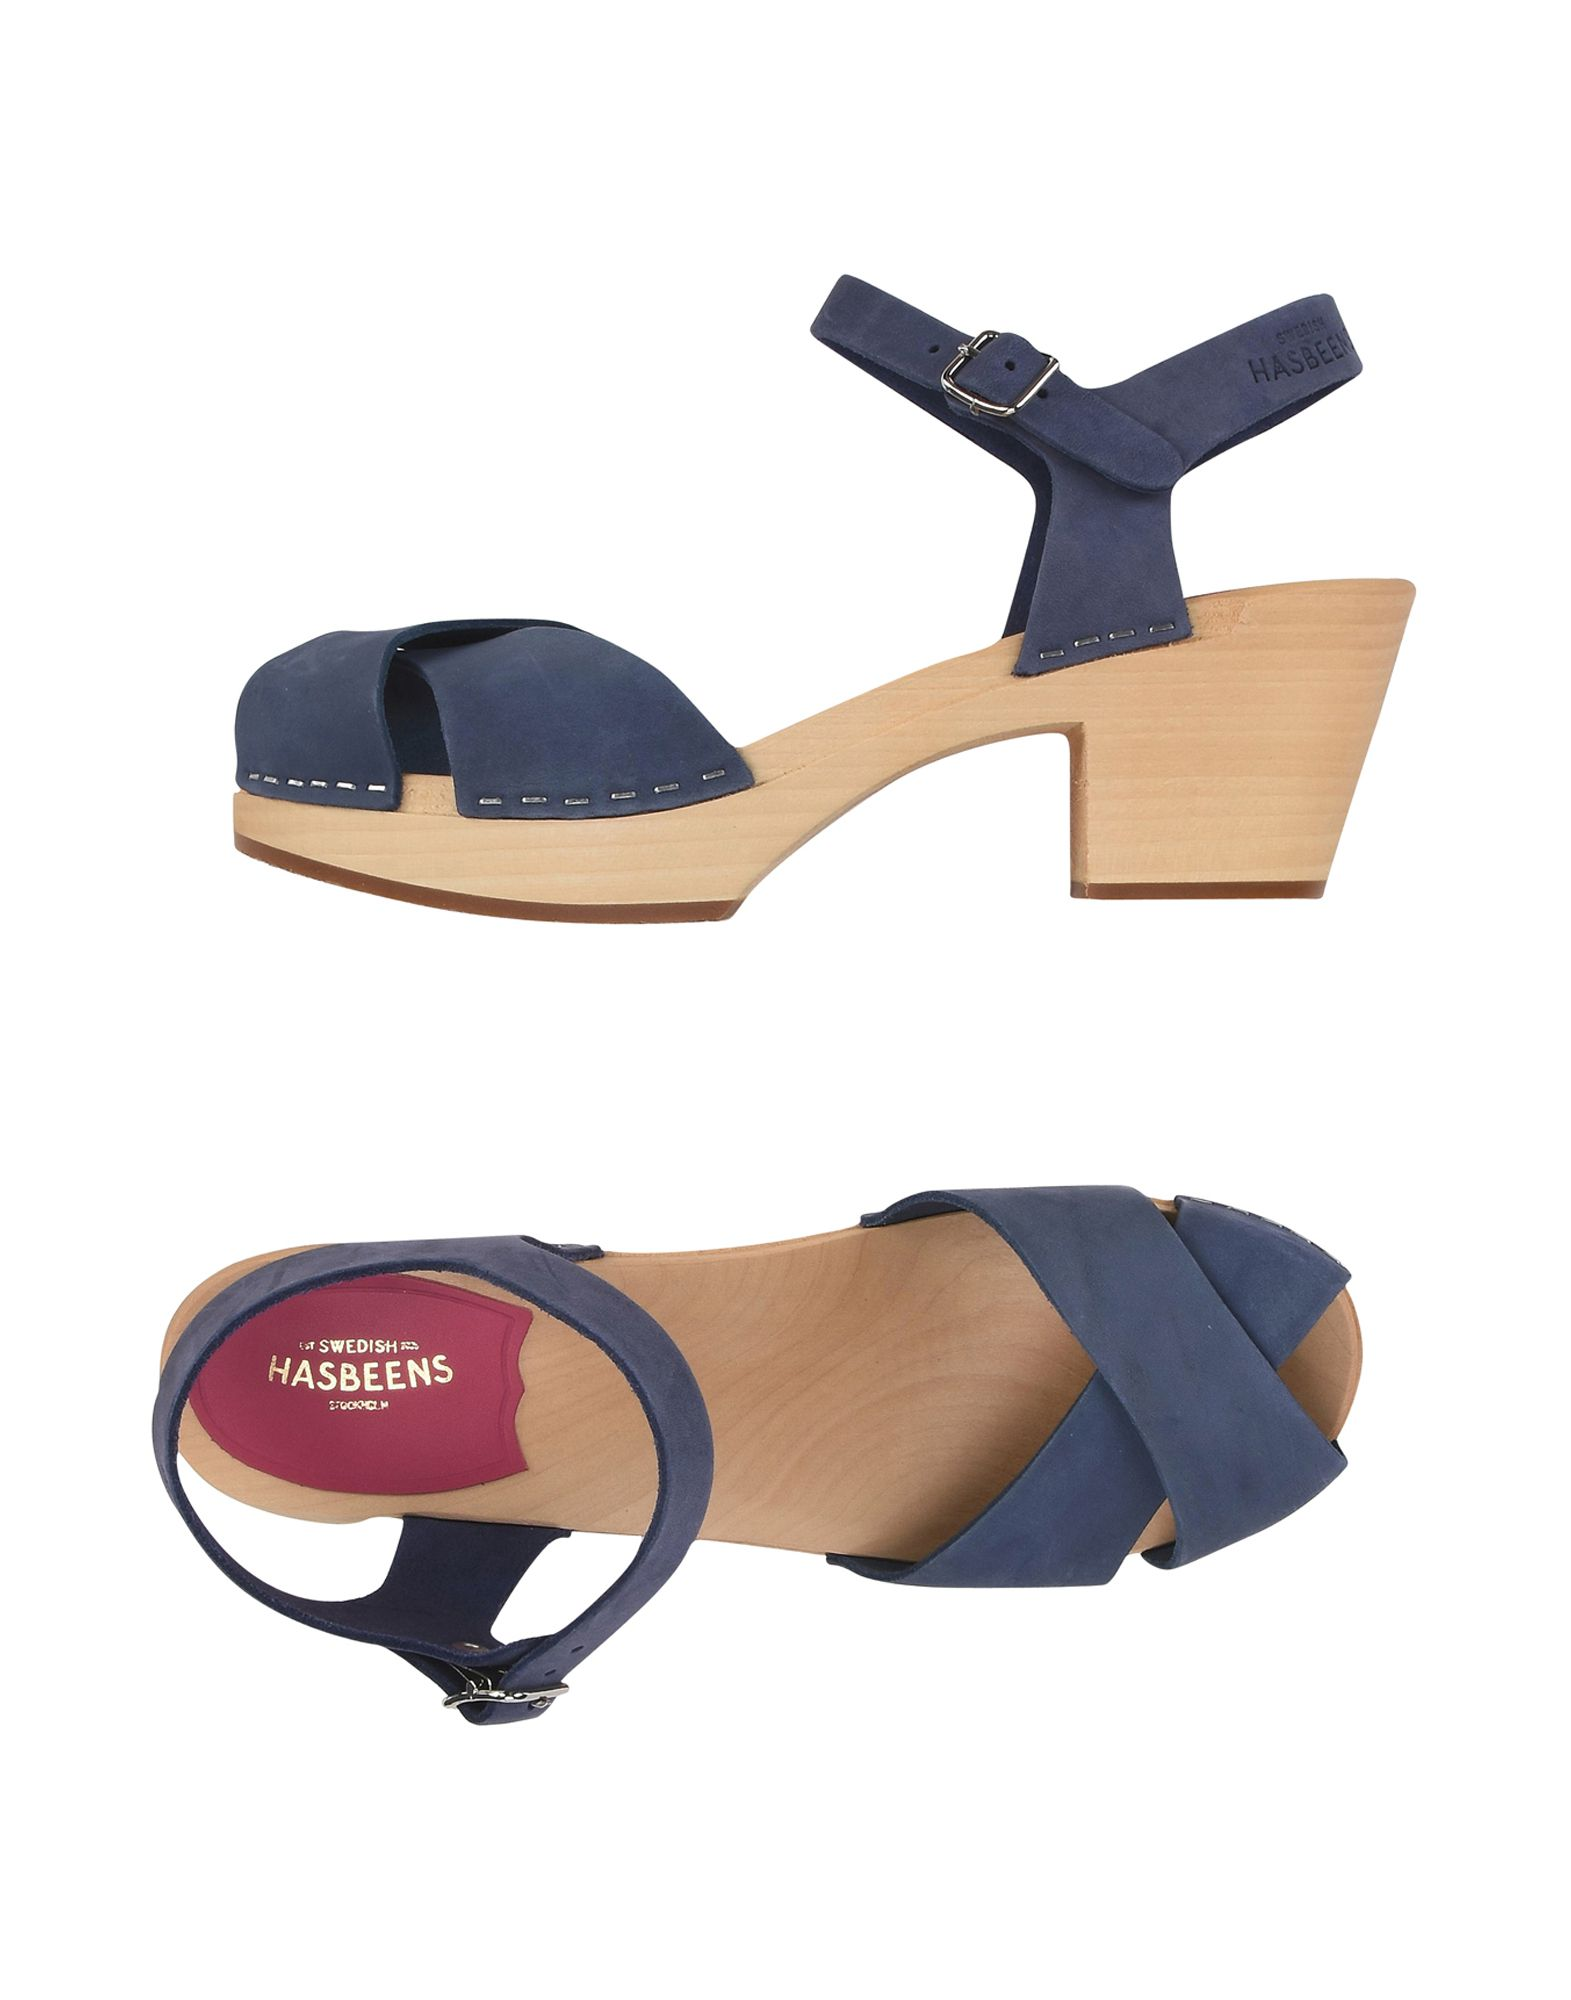 SWEDISH HASBEENS Sandals in Pastel Blue